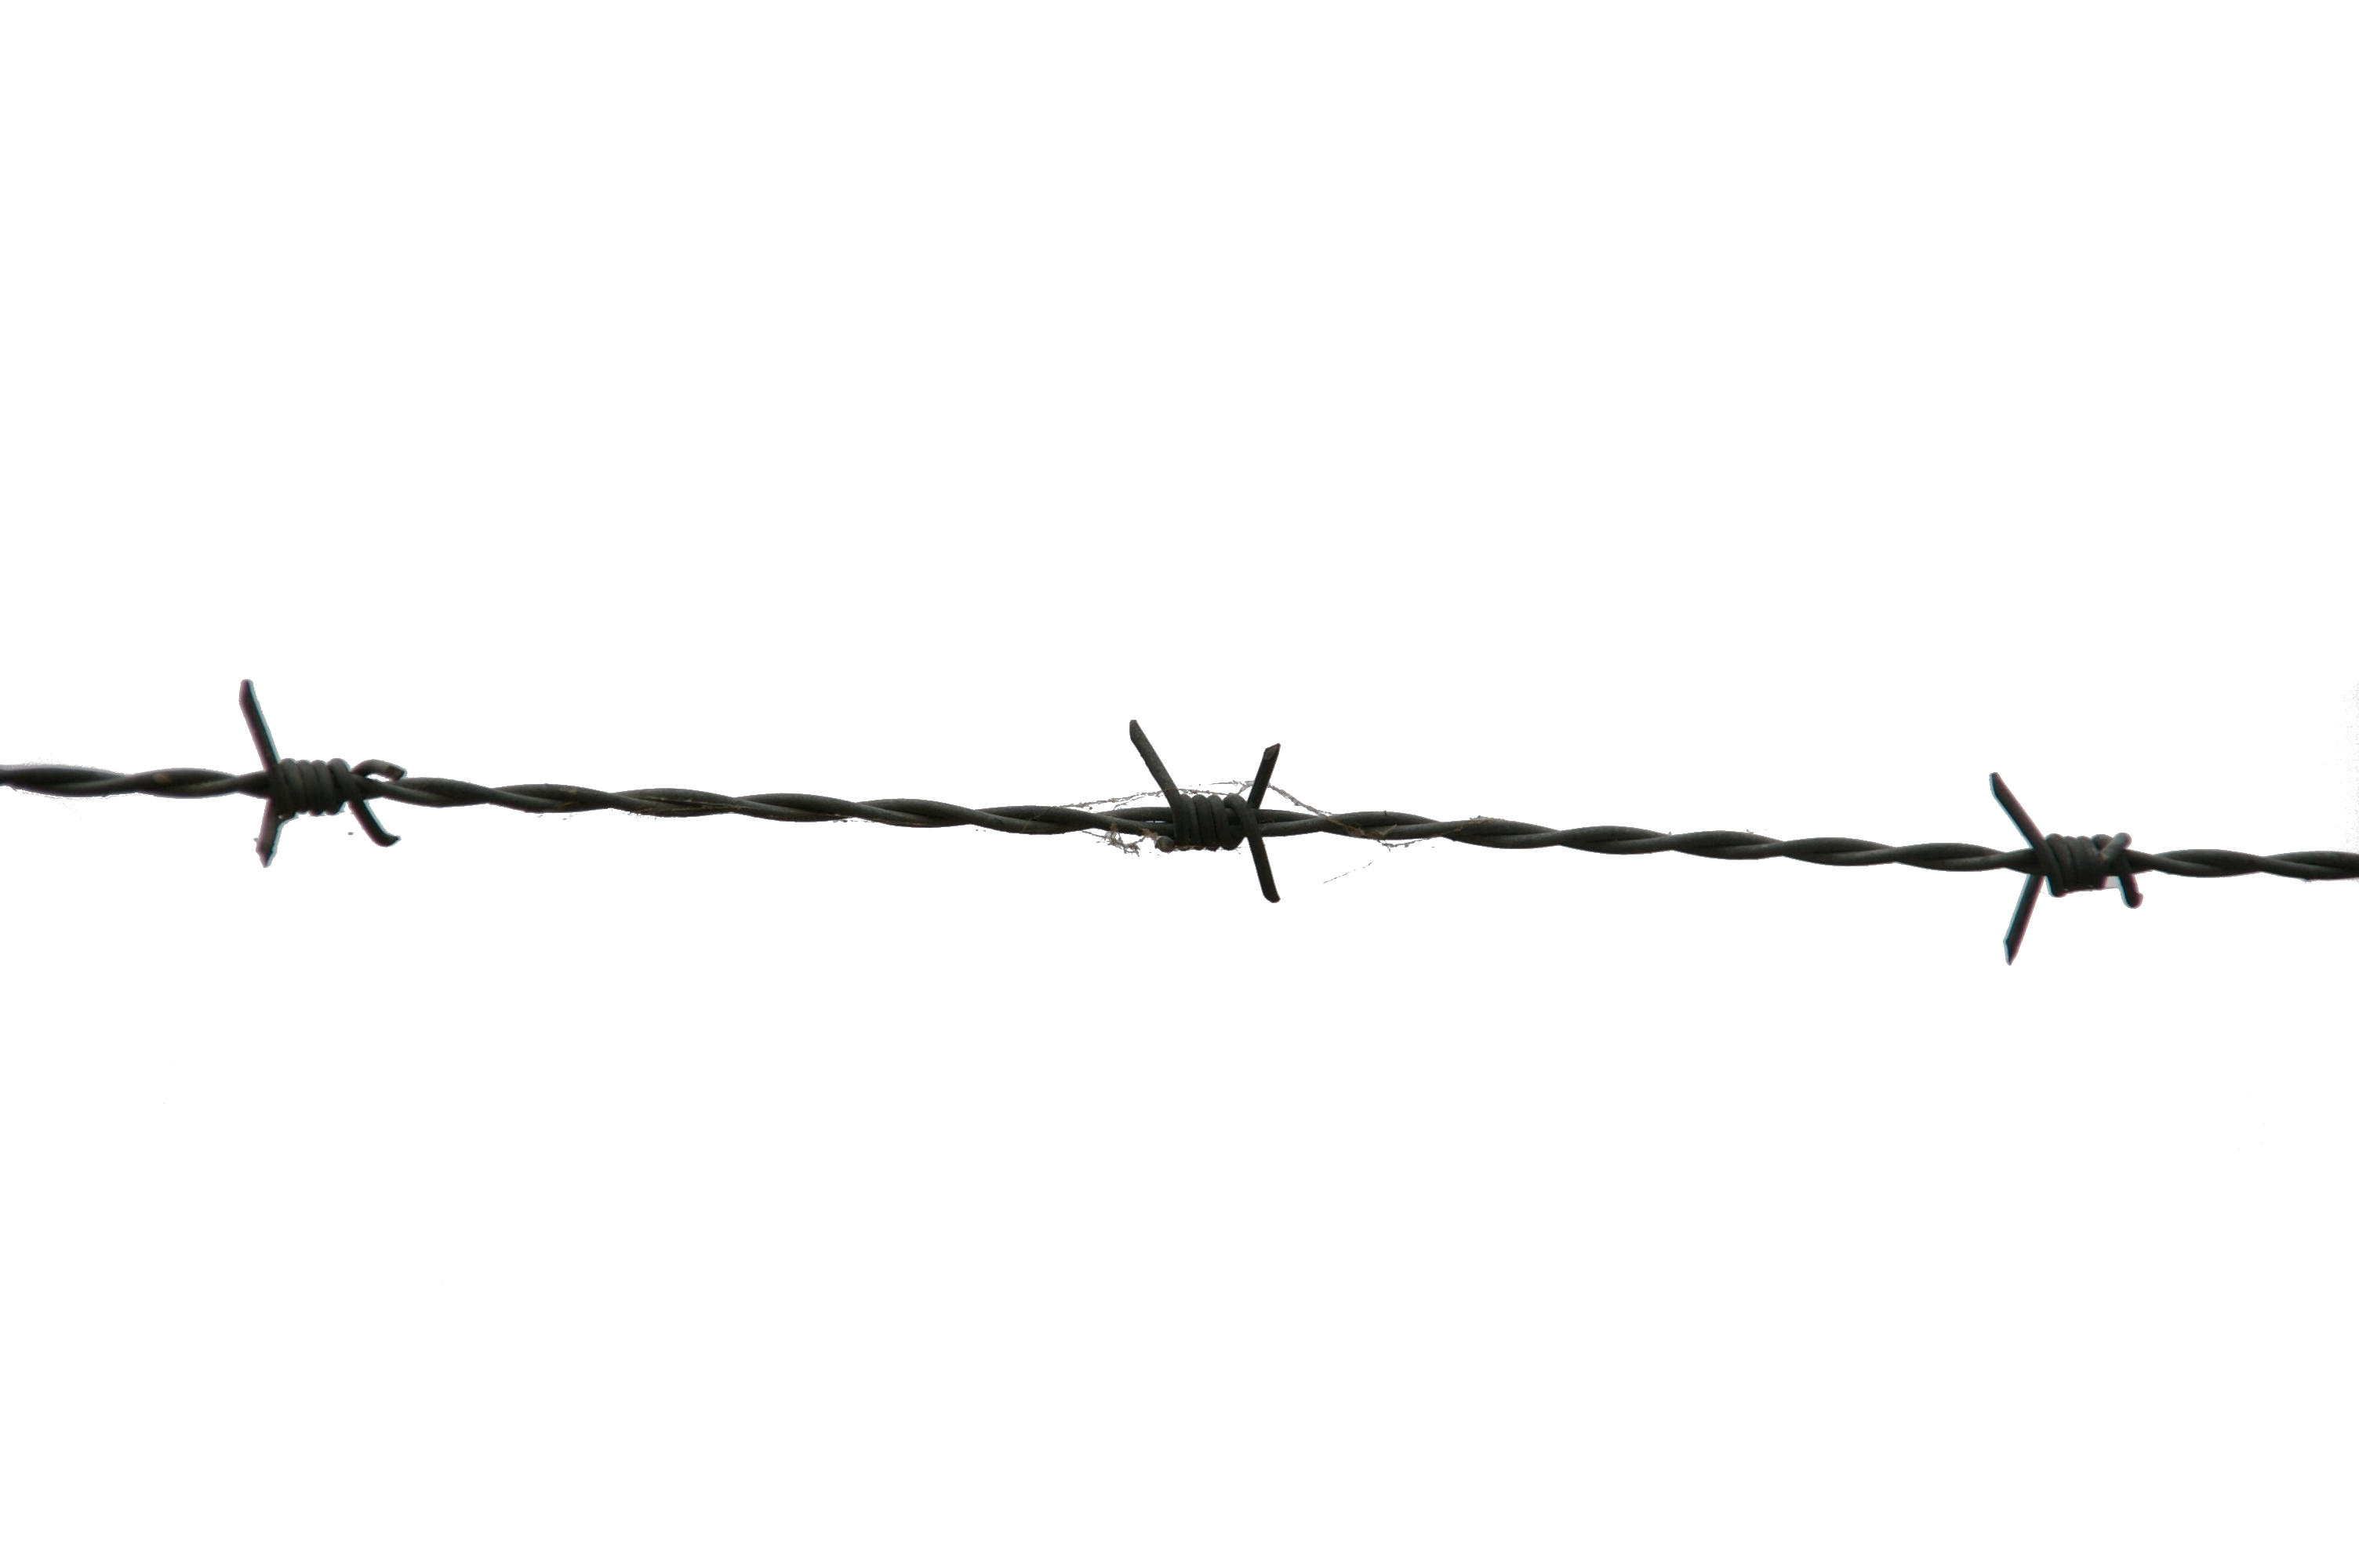 Barbed wire by greenfroggy on deviantart